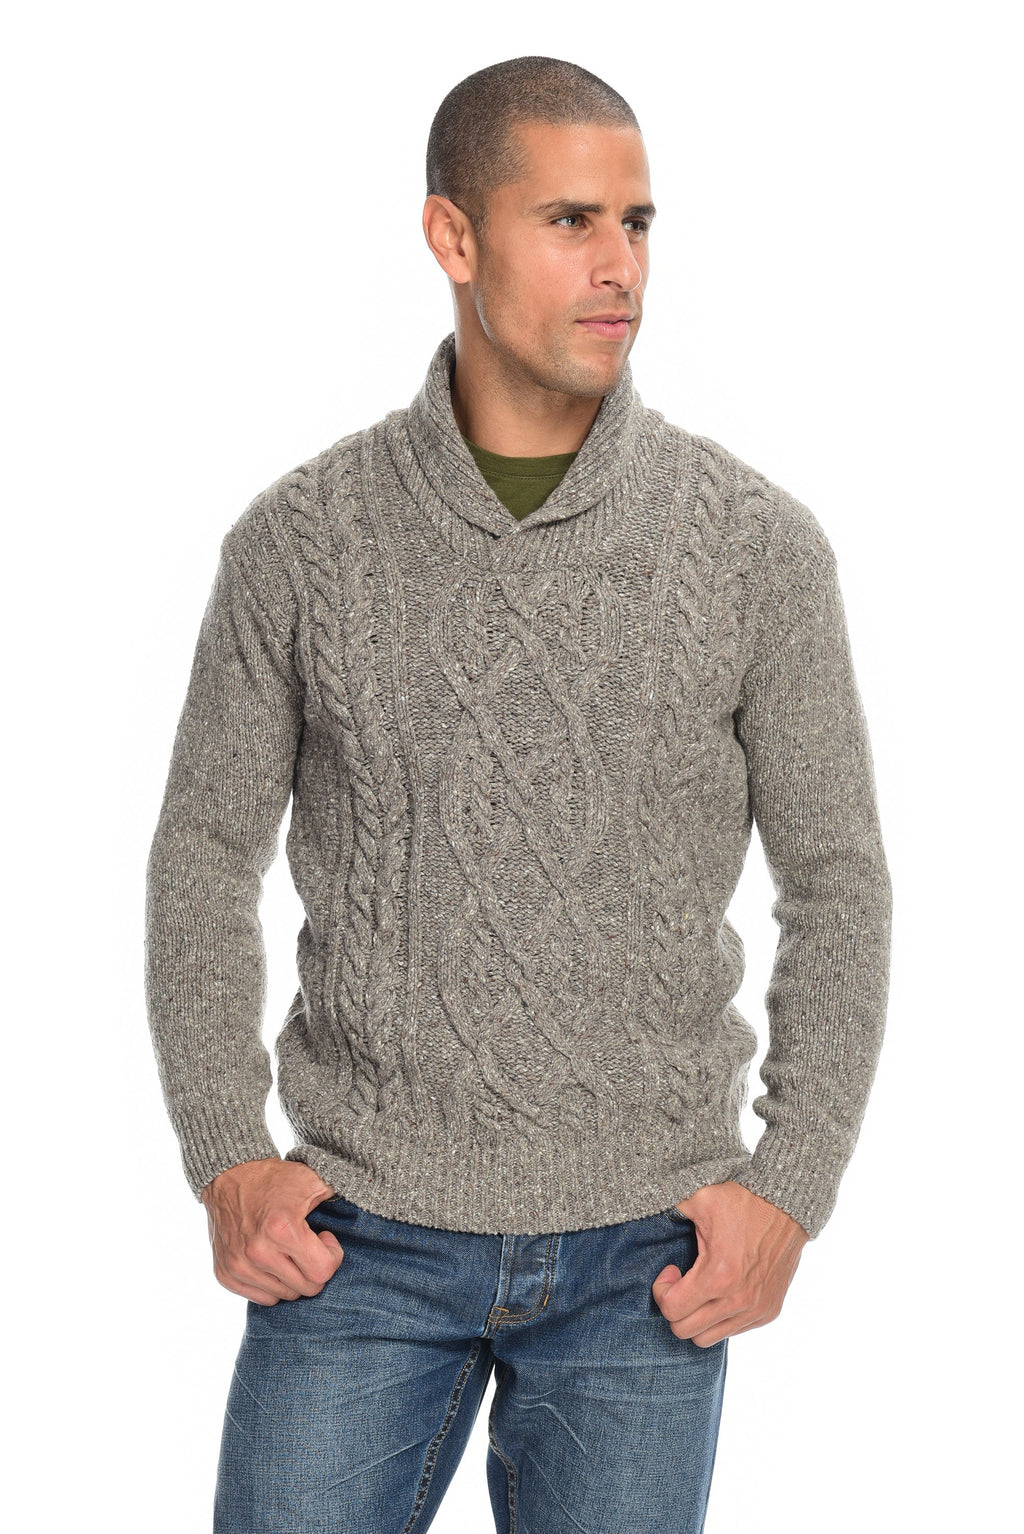 Knitted Clonard Shawl Collar Cable Irish Pullover Men's